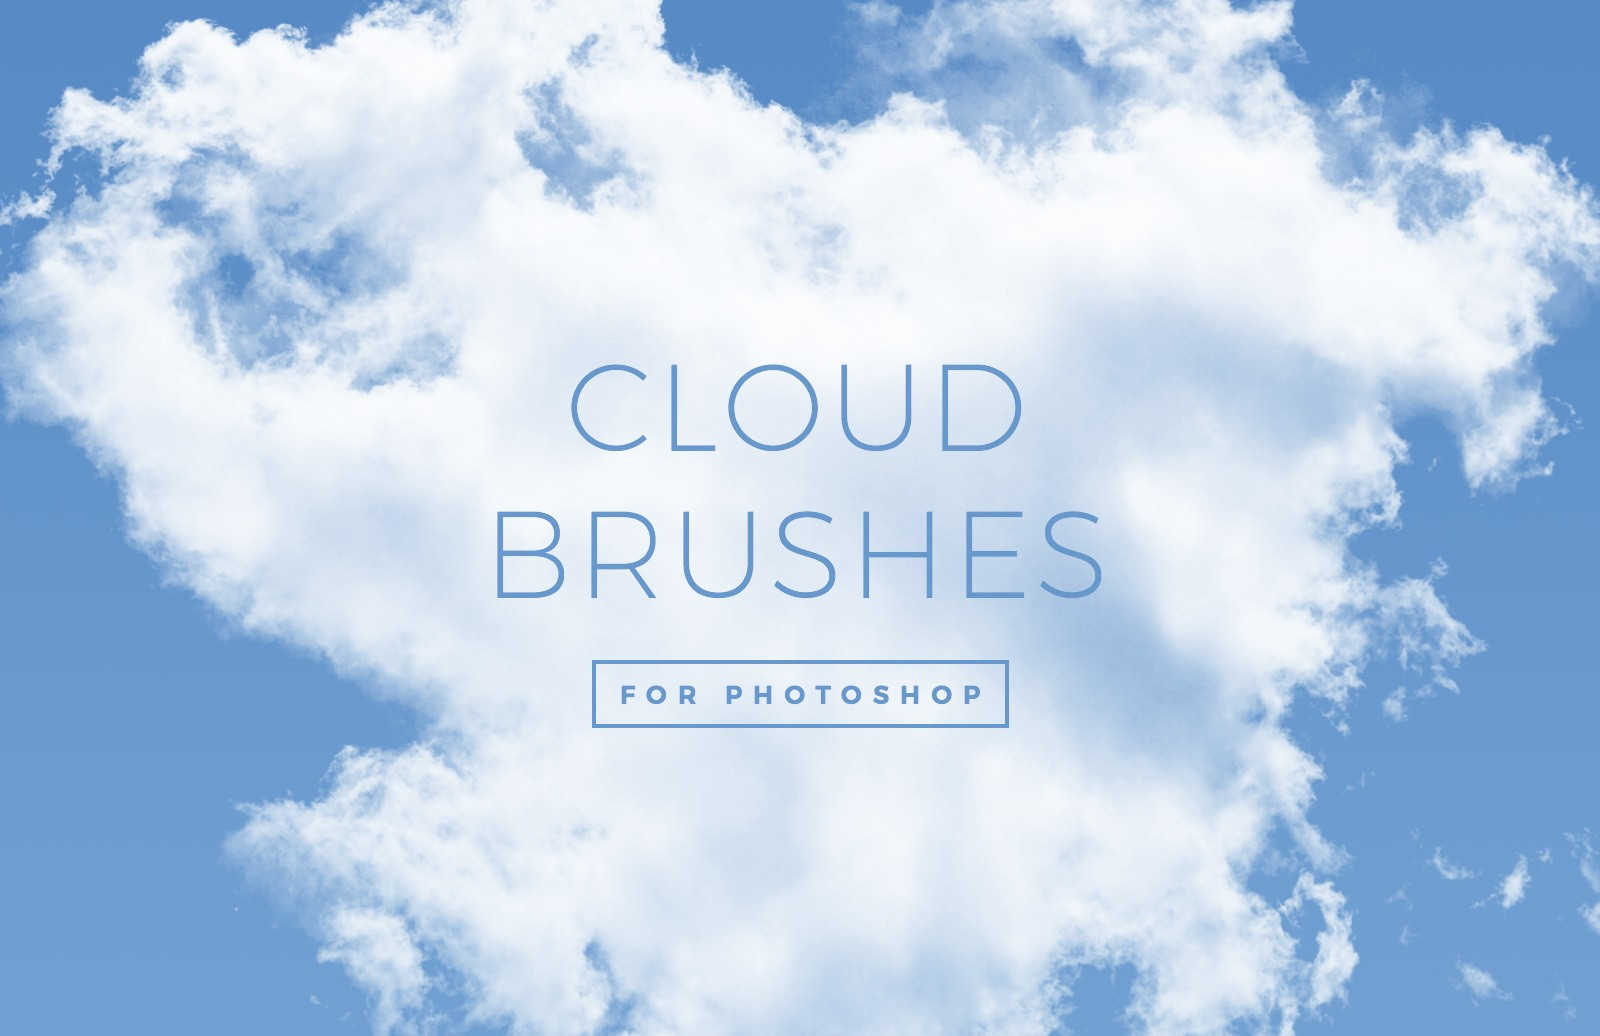 30 Cloud Brushes for Photoshop